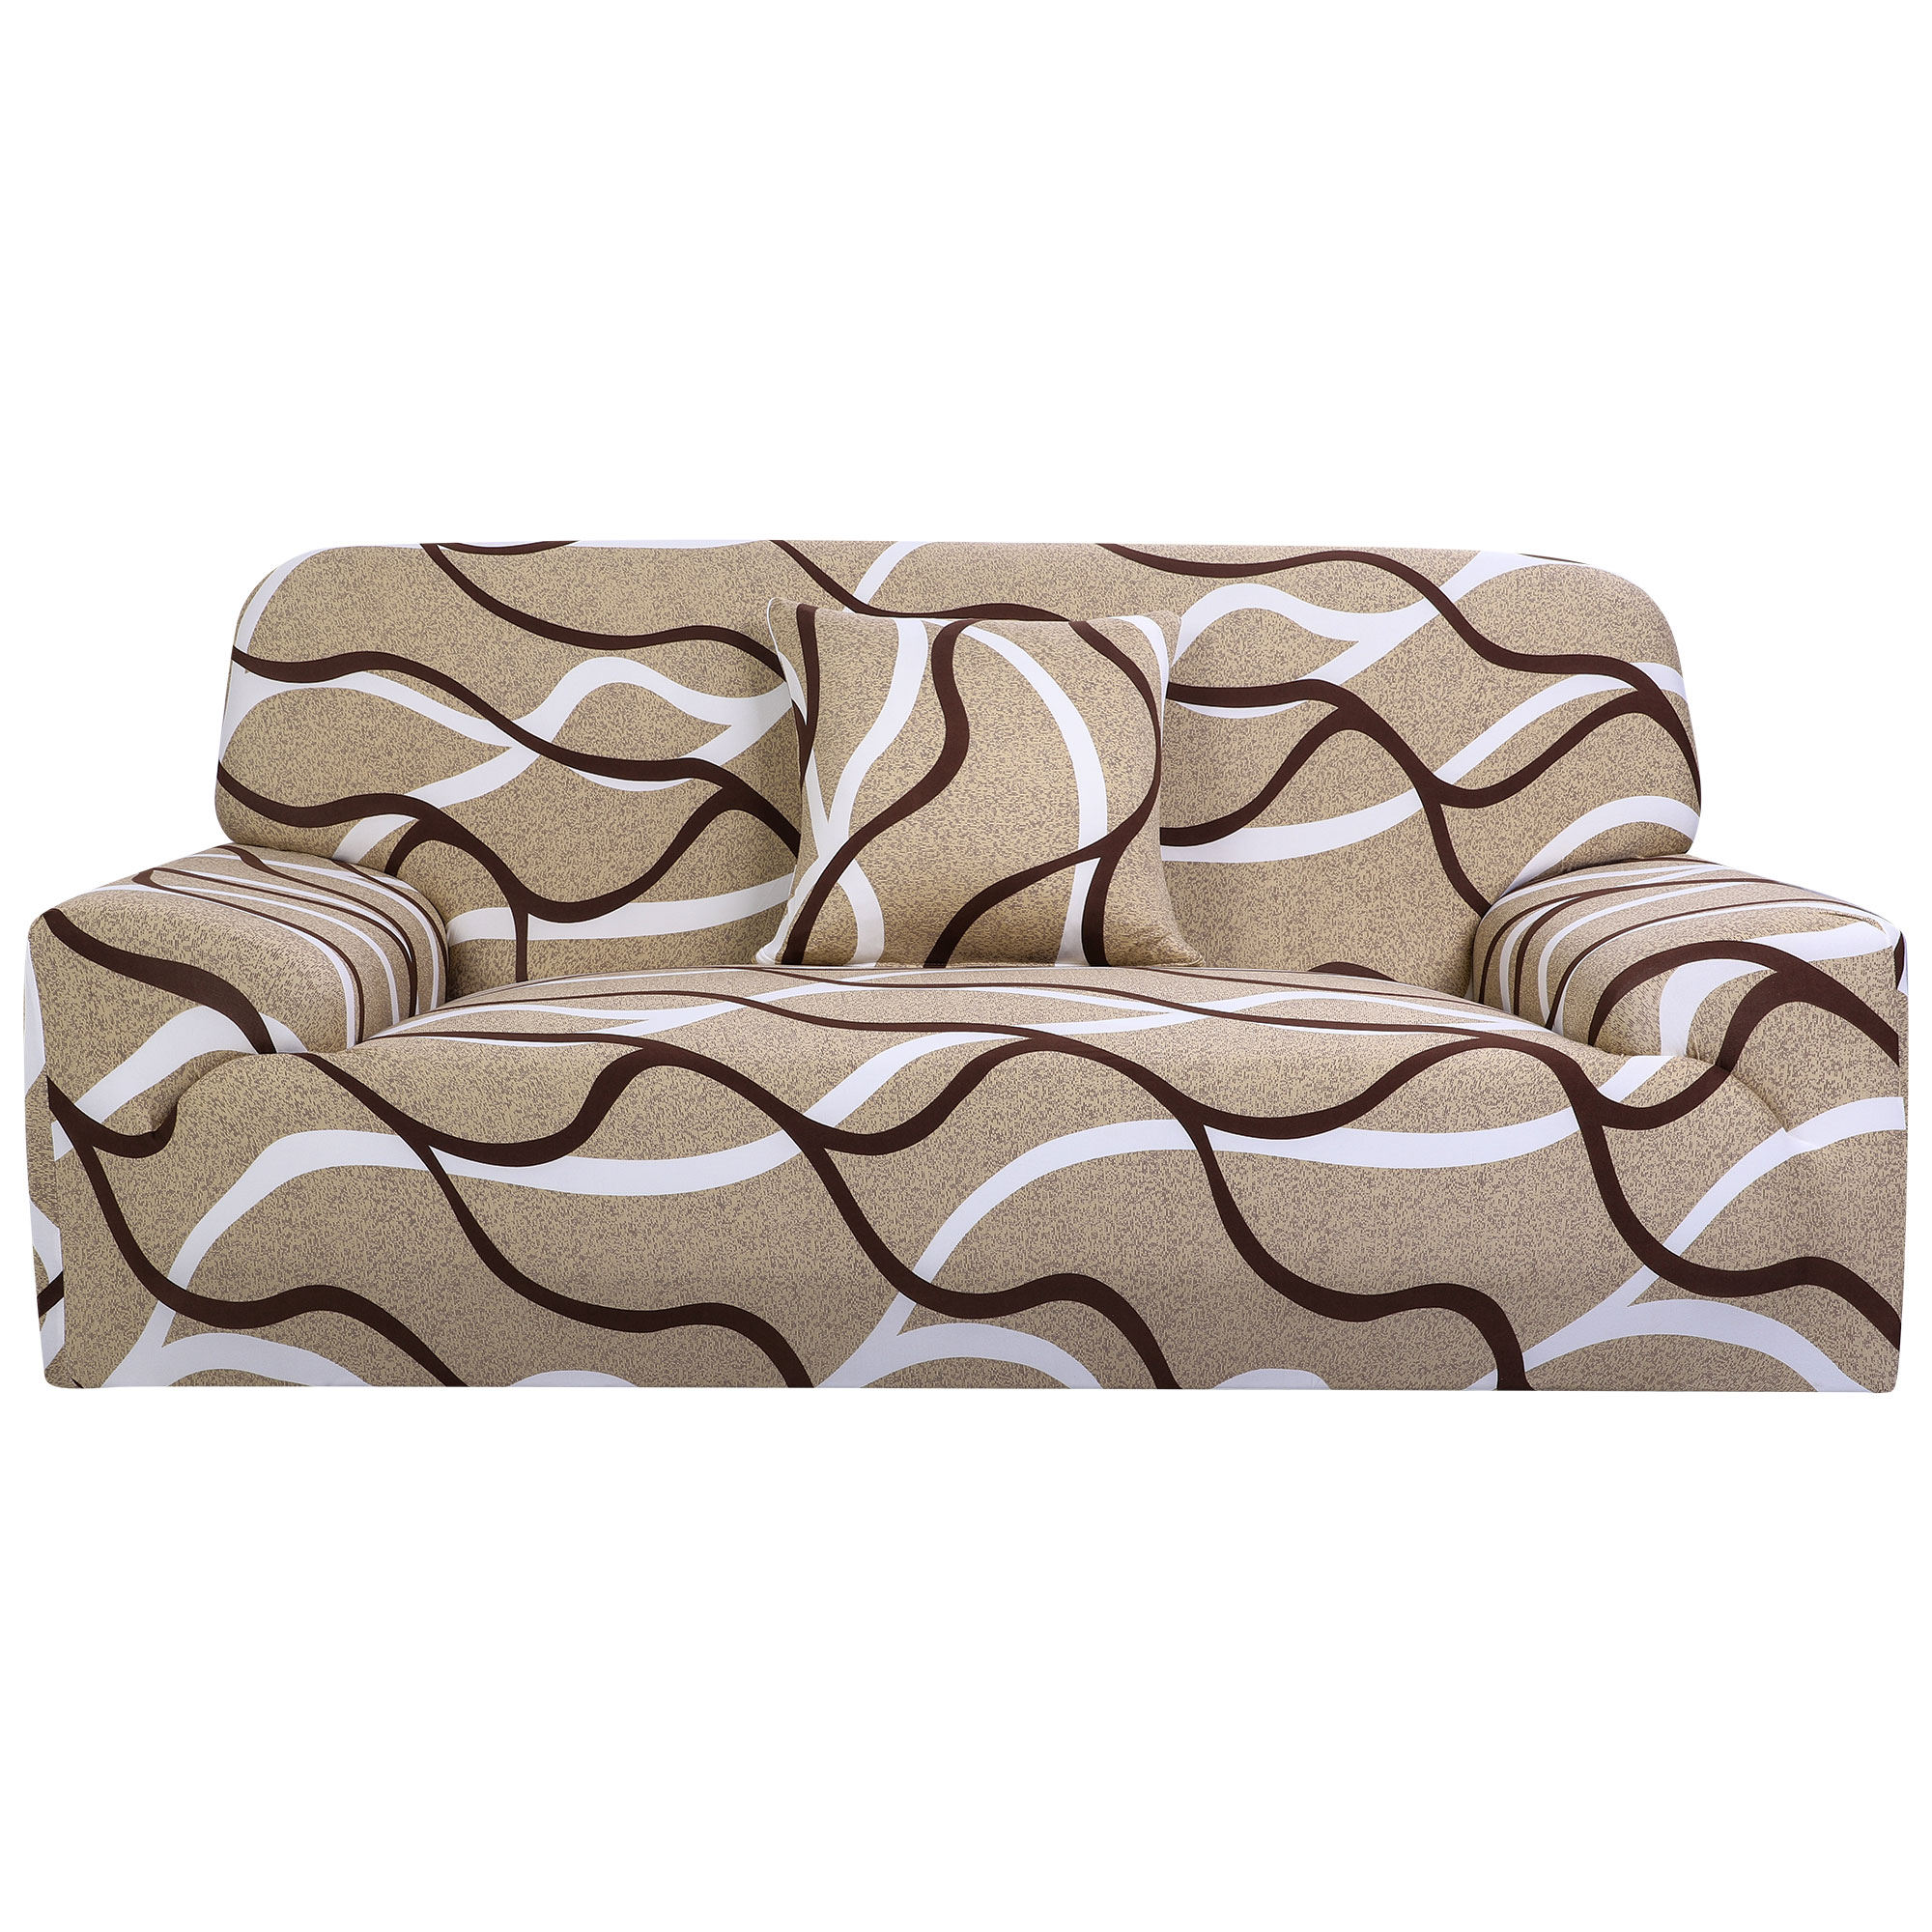 Household Polyester Geometric Pattern Elastic Sofa Loveseat Cover Slipcover Protector 55-74 Inch